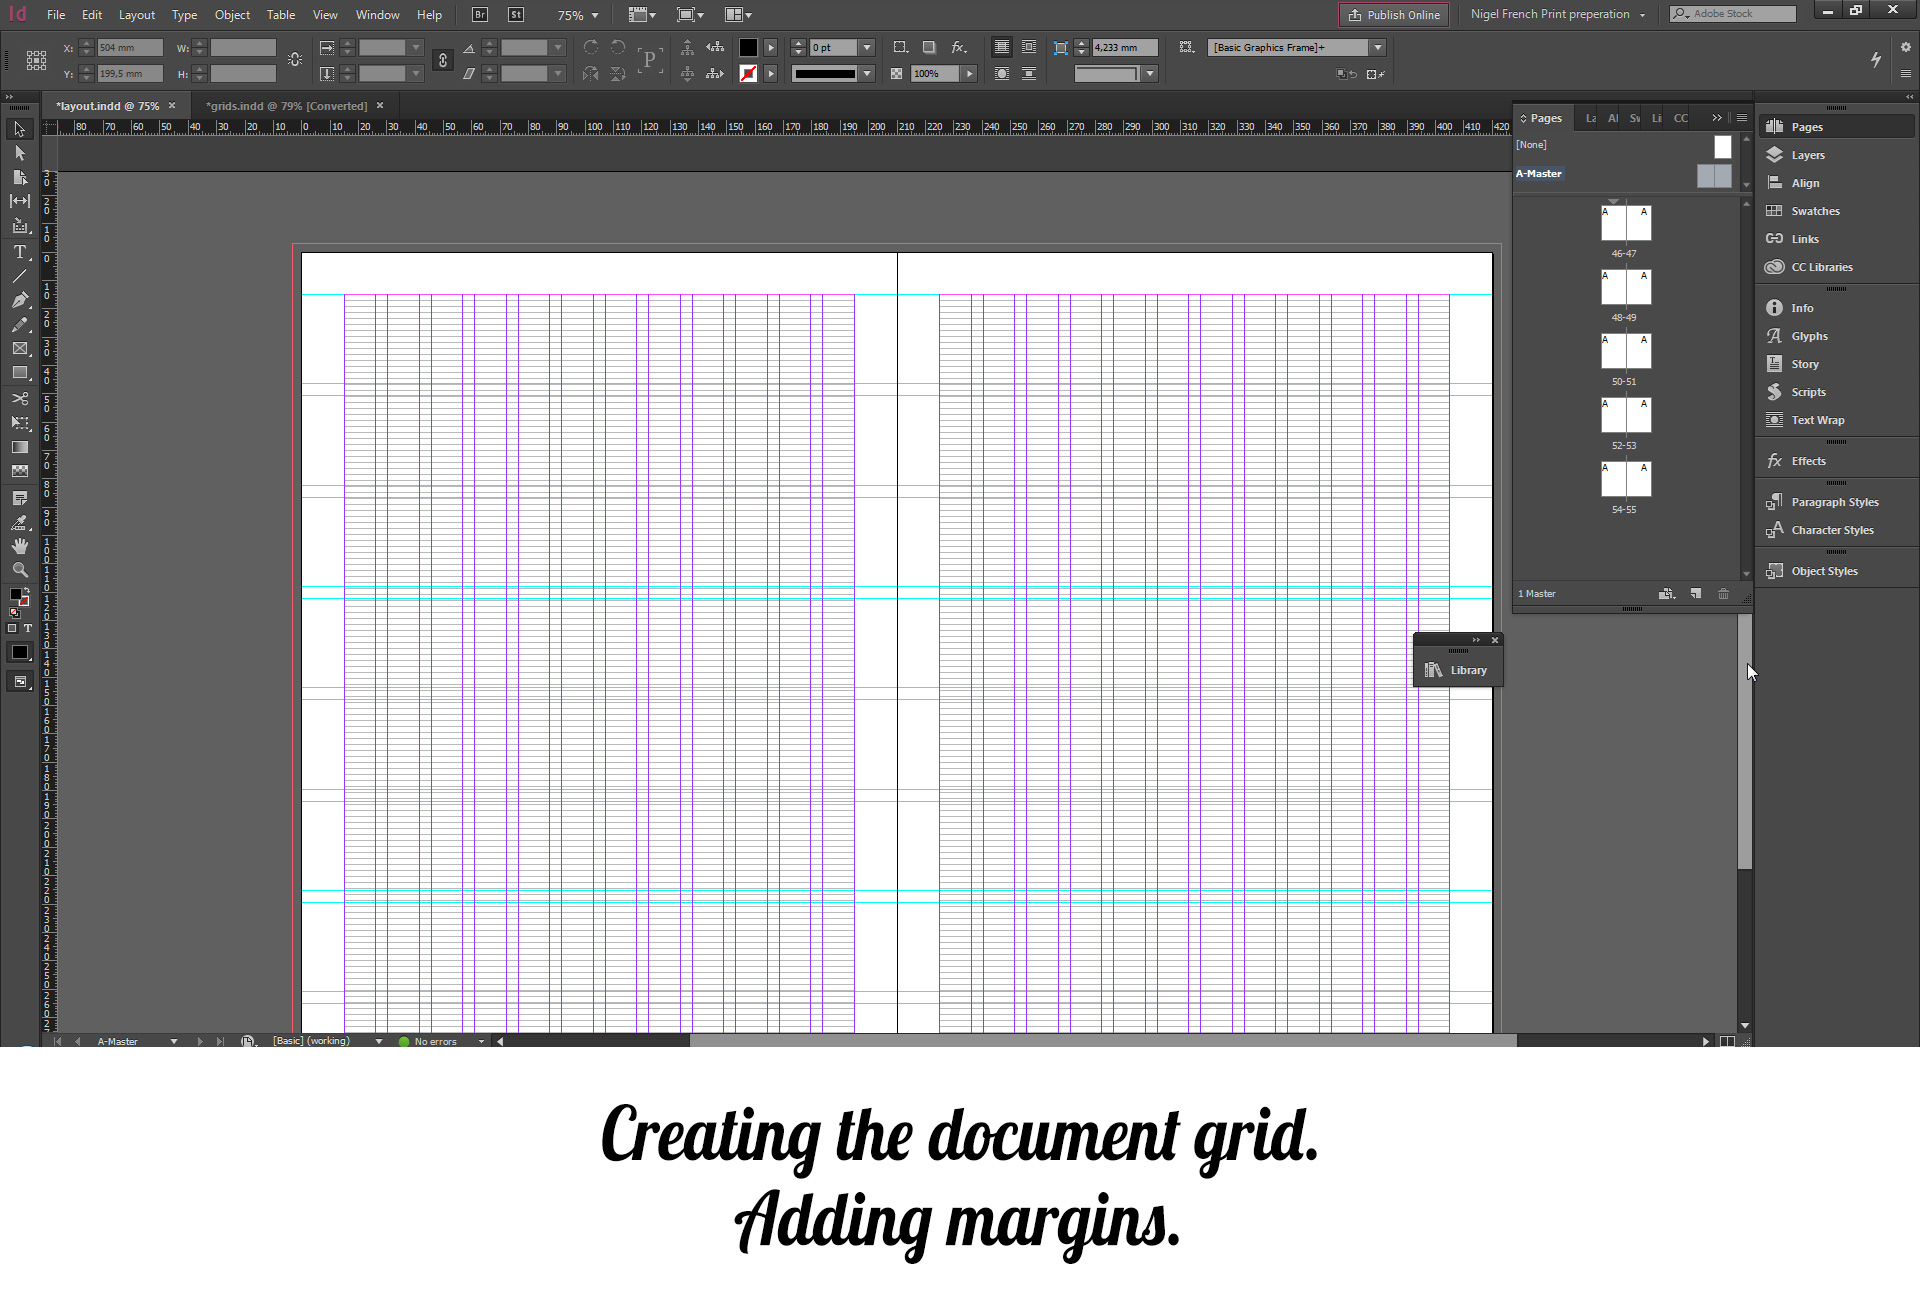 creating-the-document-grid_02